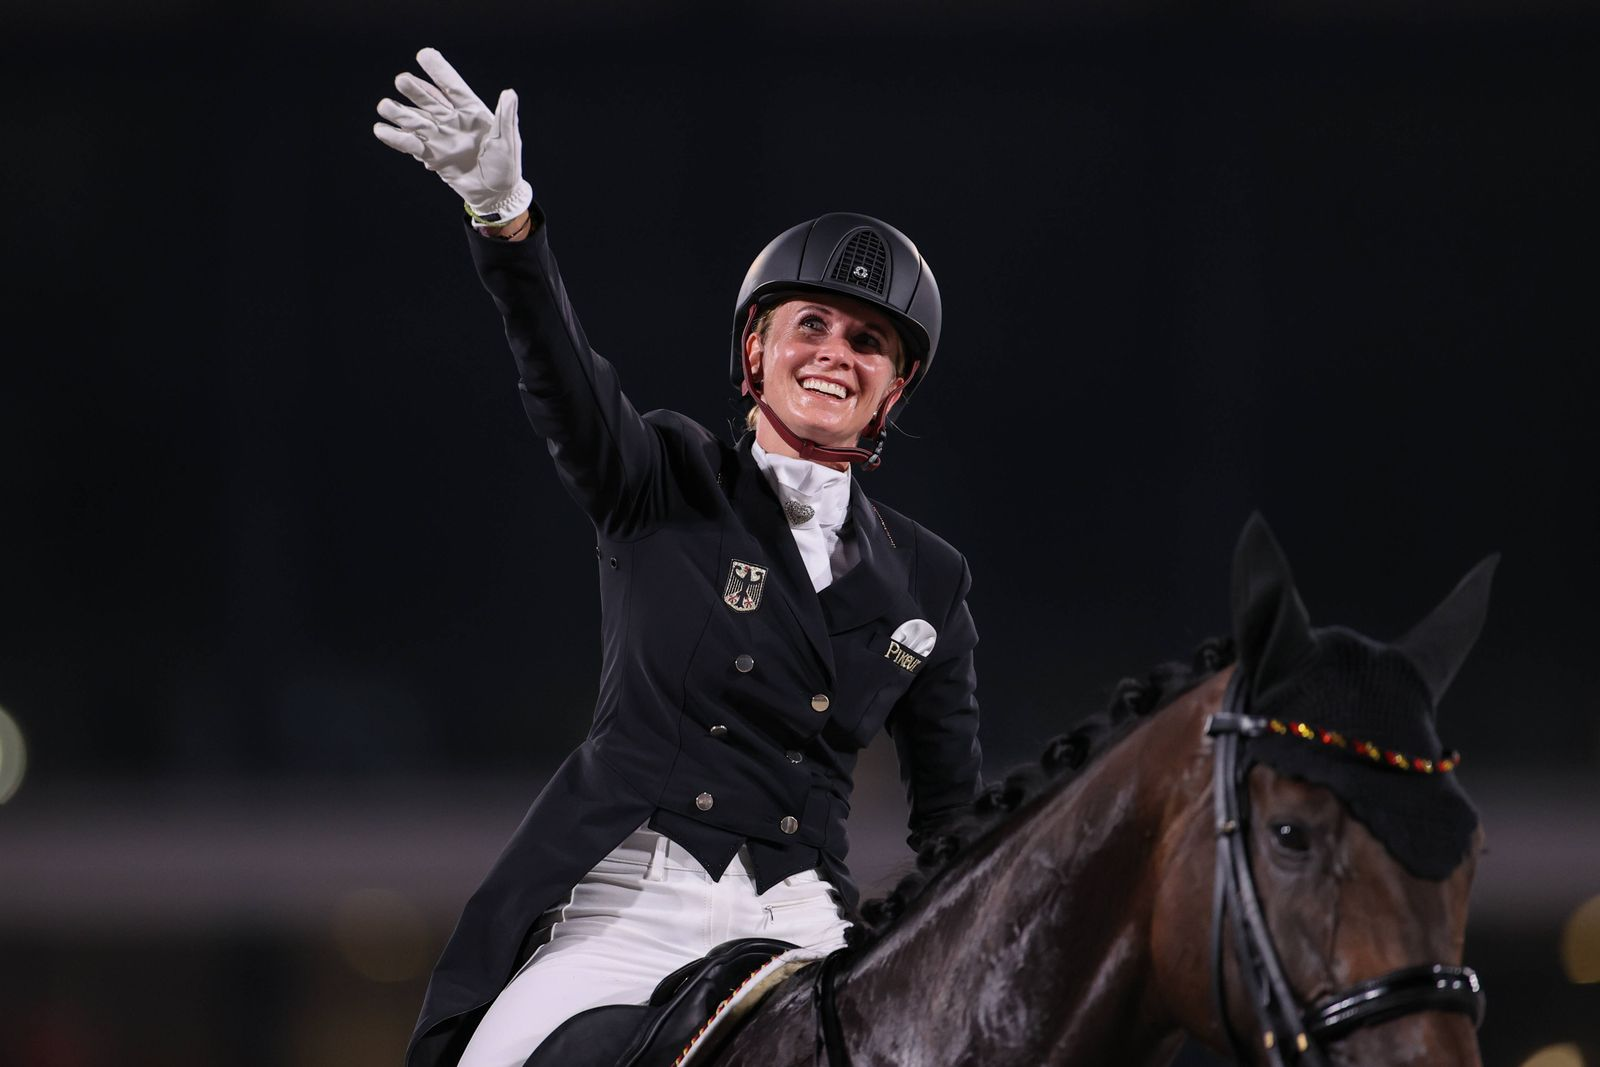 BREDOW-WERNDL Jessica (GER), JULY 27, 2021 - Equestrian : Dressage Team Final, during the Tokyo 2020 Olympic Games, Olym